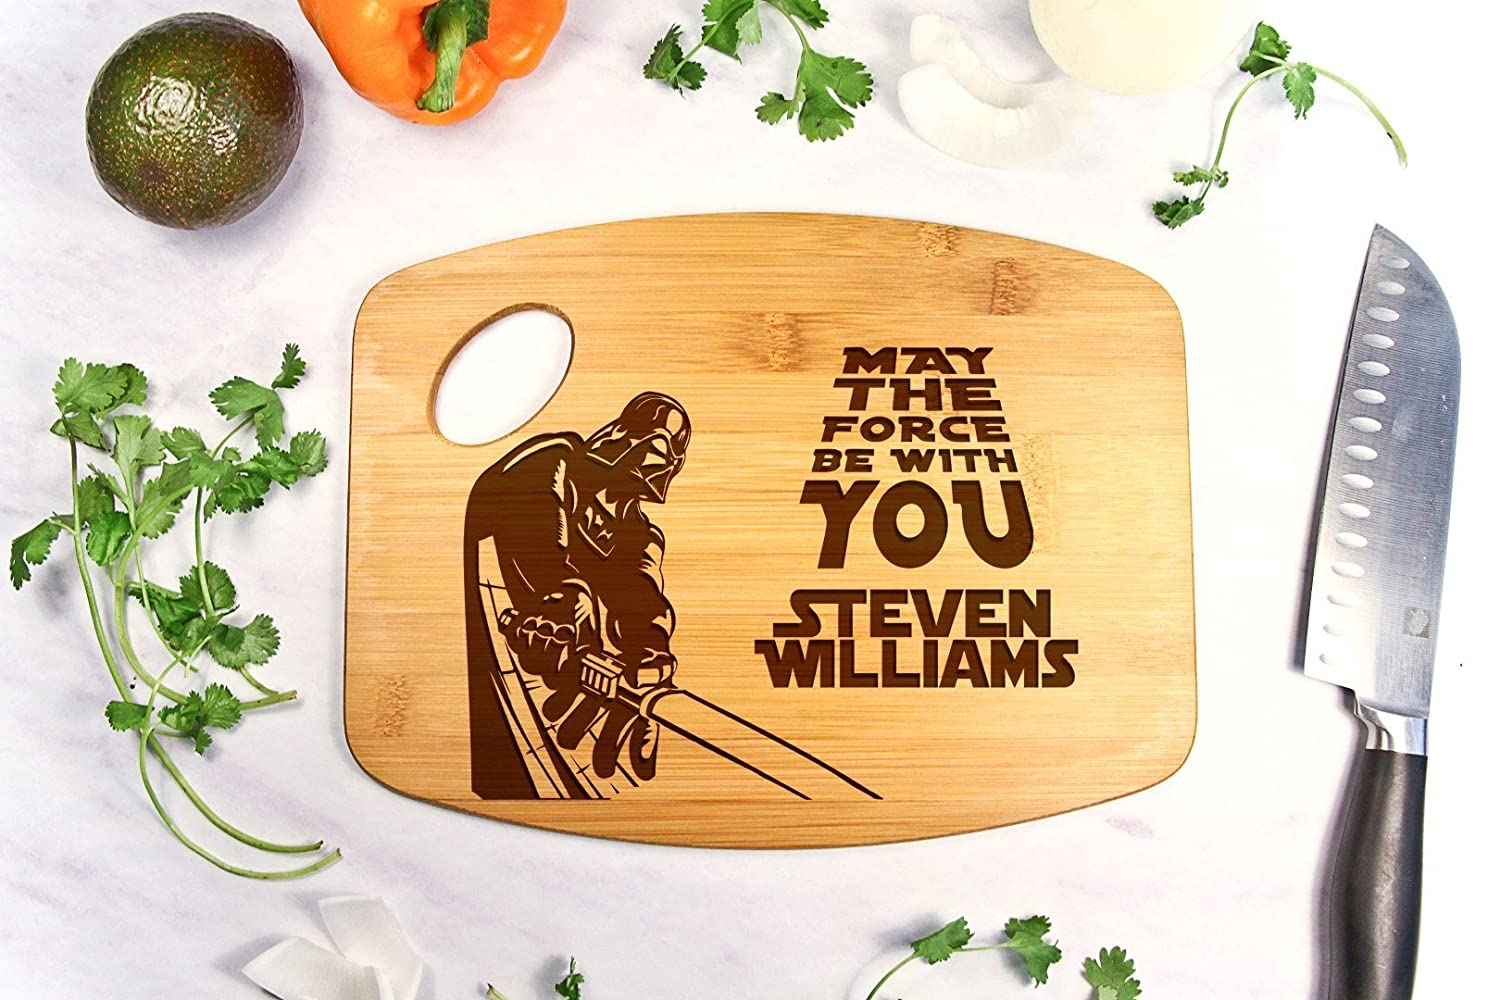 Personalized Cutting Board Engraved Bamboo Chopping Block Bamboo Handle - Star Wars Darth Vader